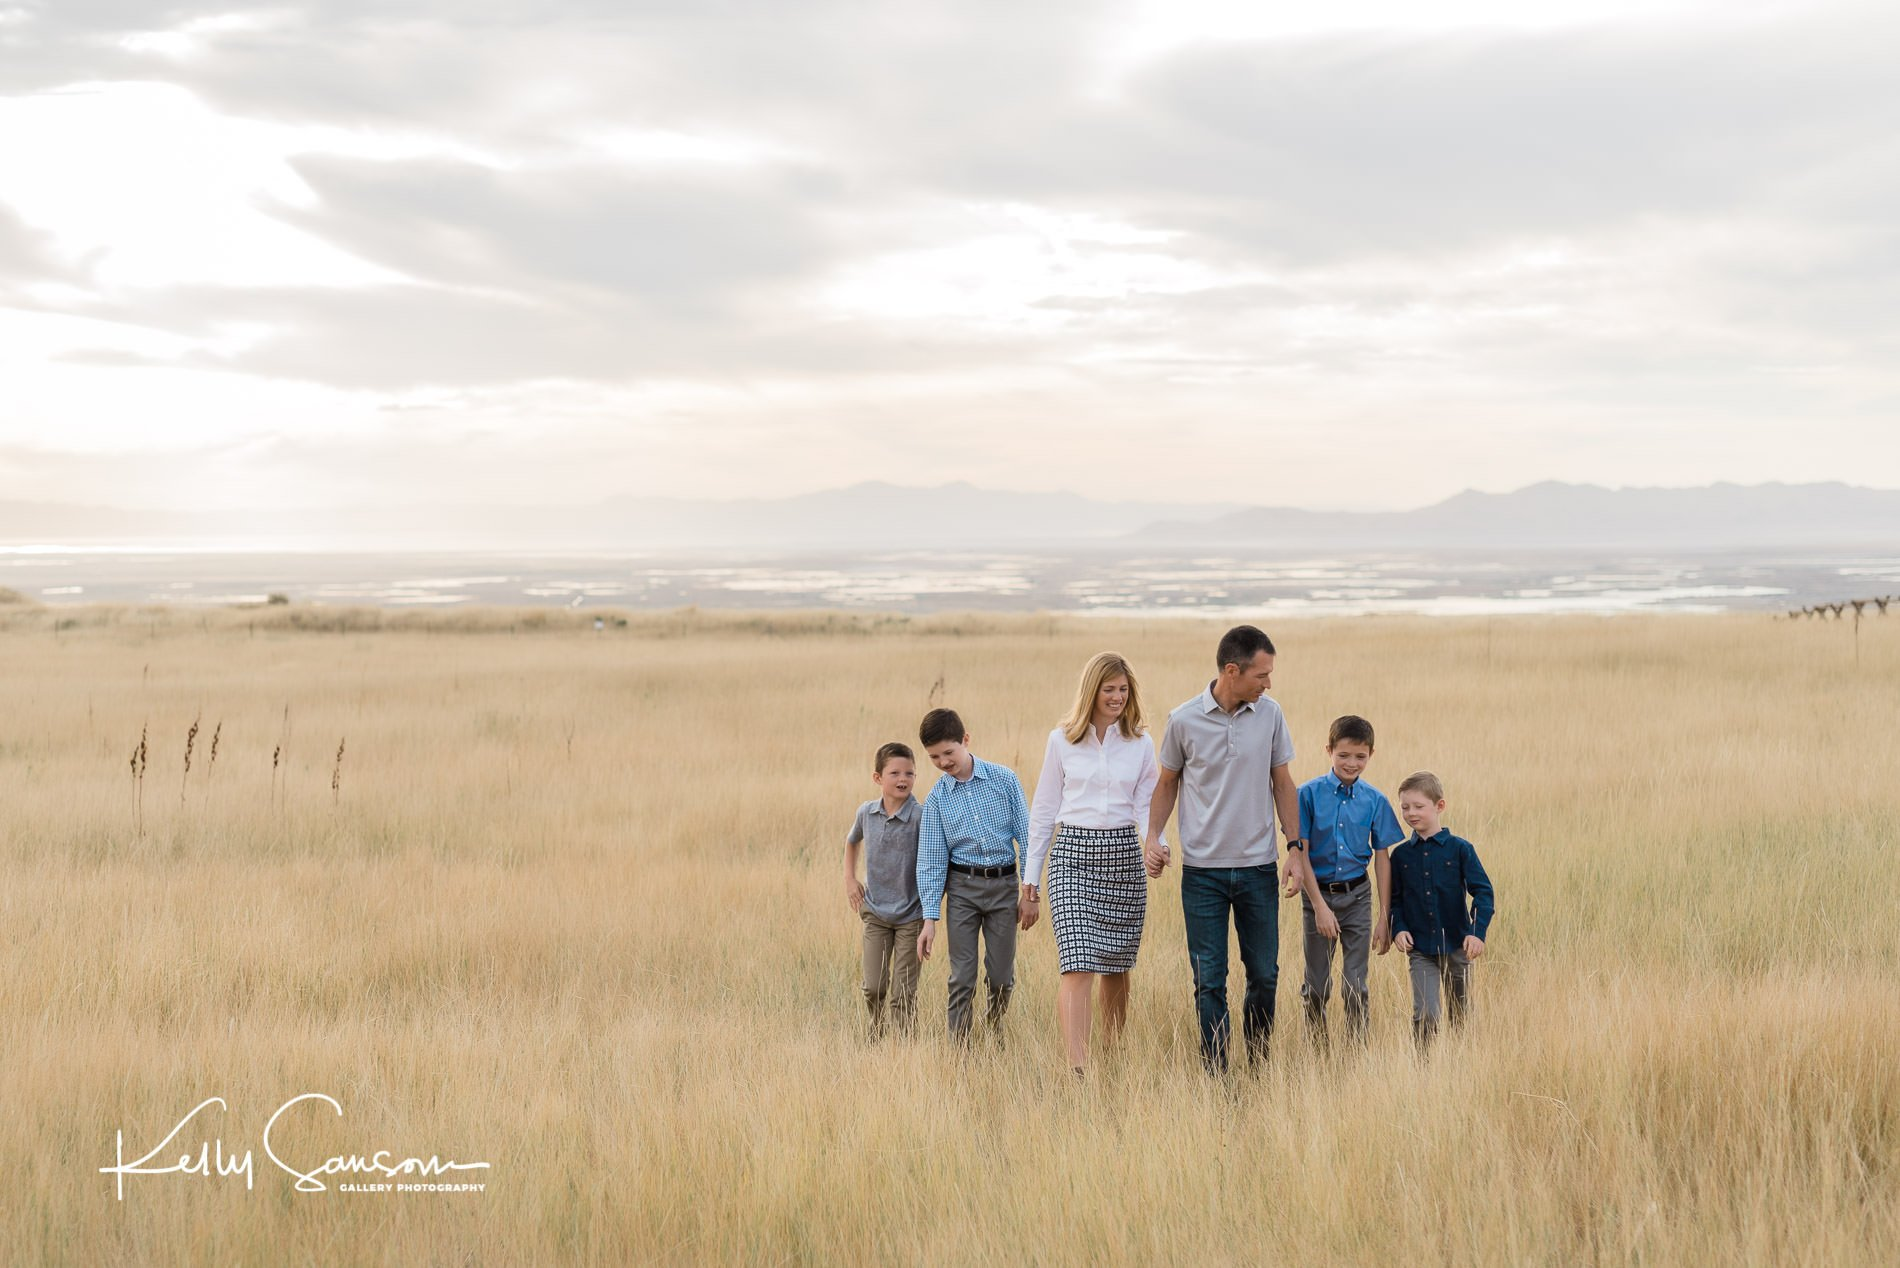 A family holding hands walking through tall grasses with view in the background for Bountiful portrait photography.